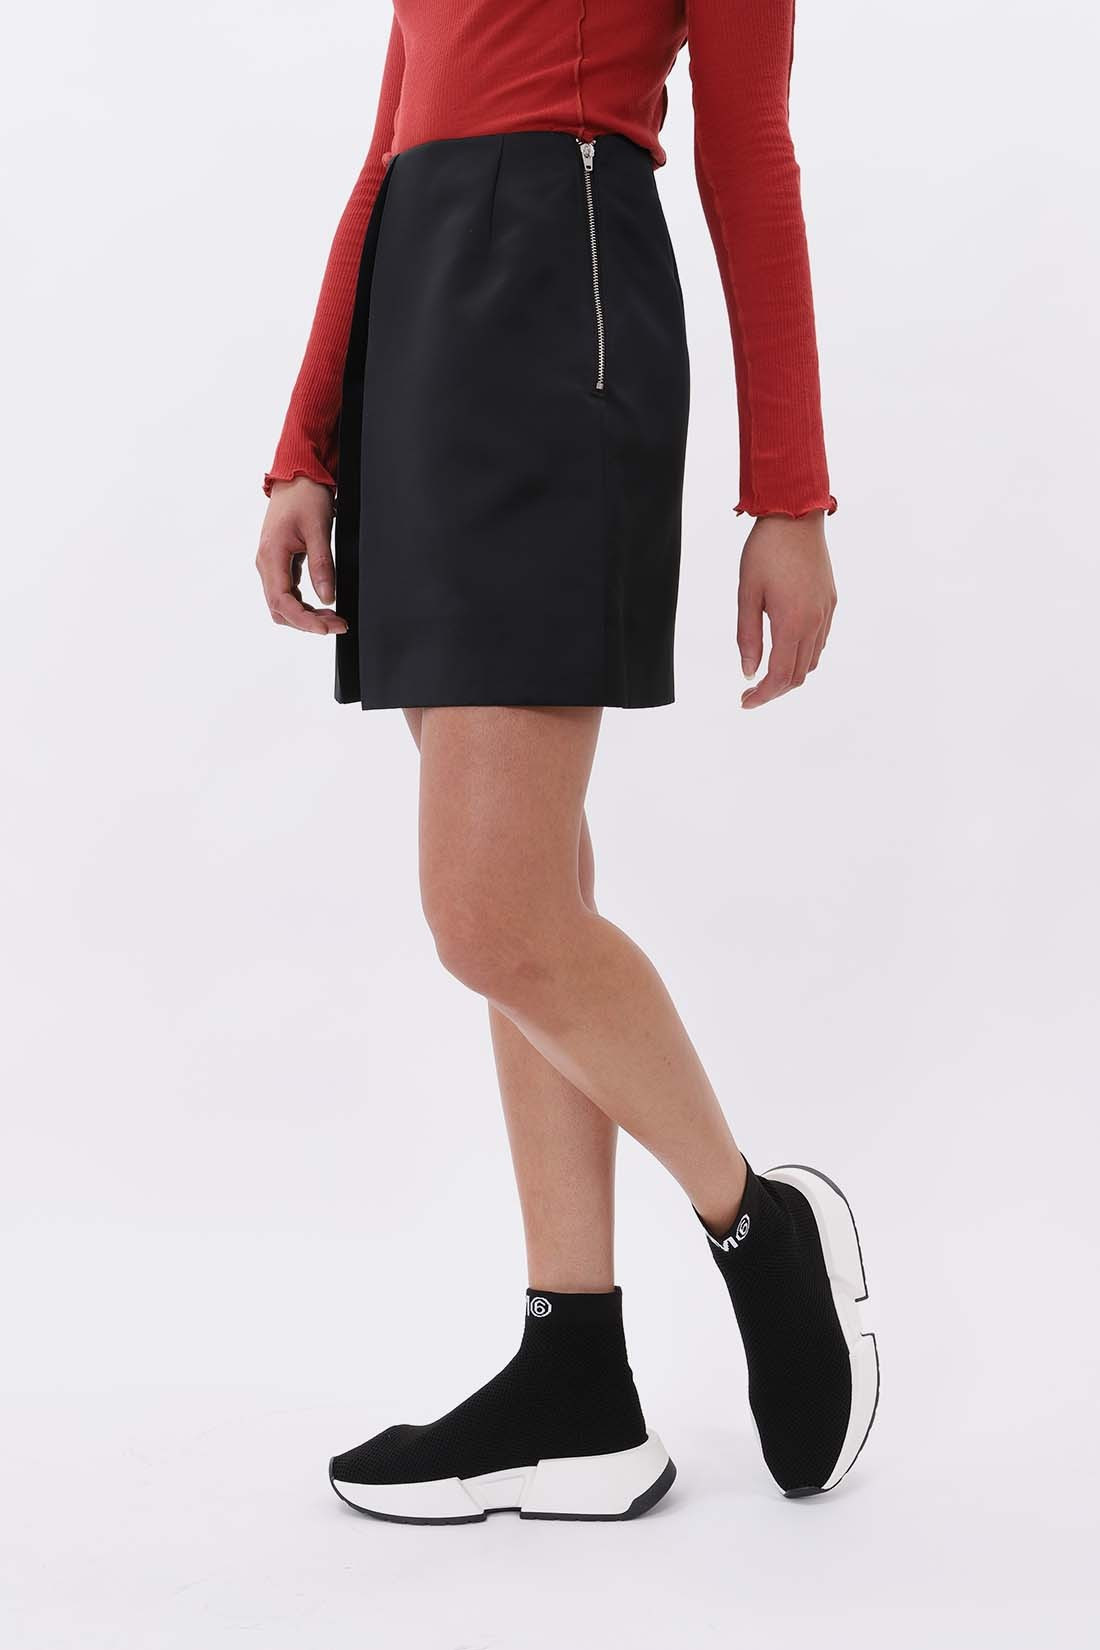 MM6 MAISON MARGIELA FOR WOMAN / Satin skirt Black